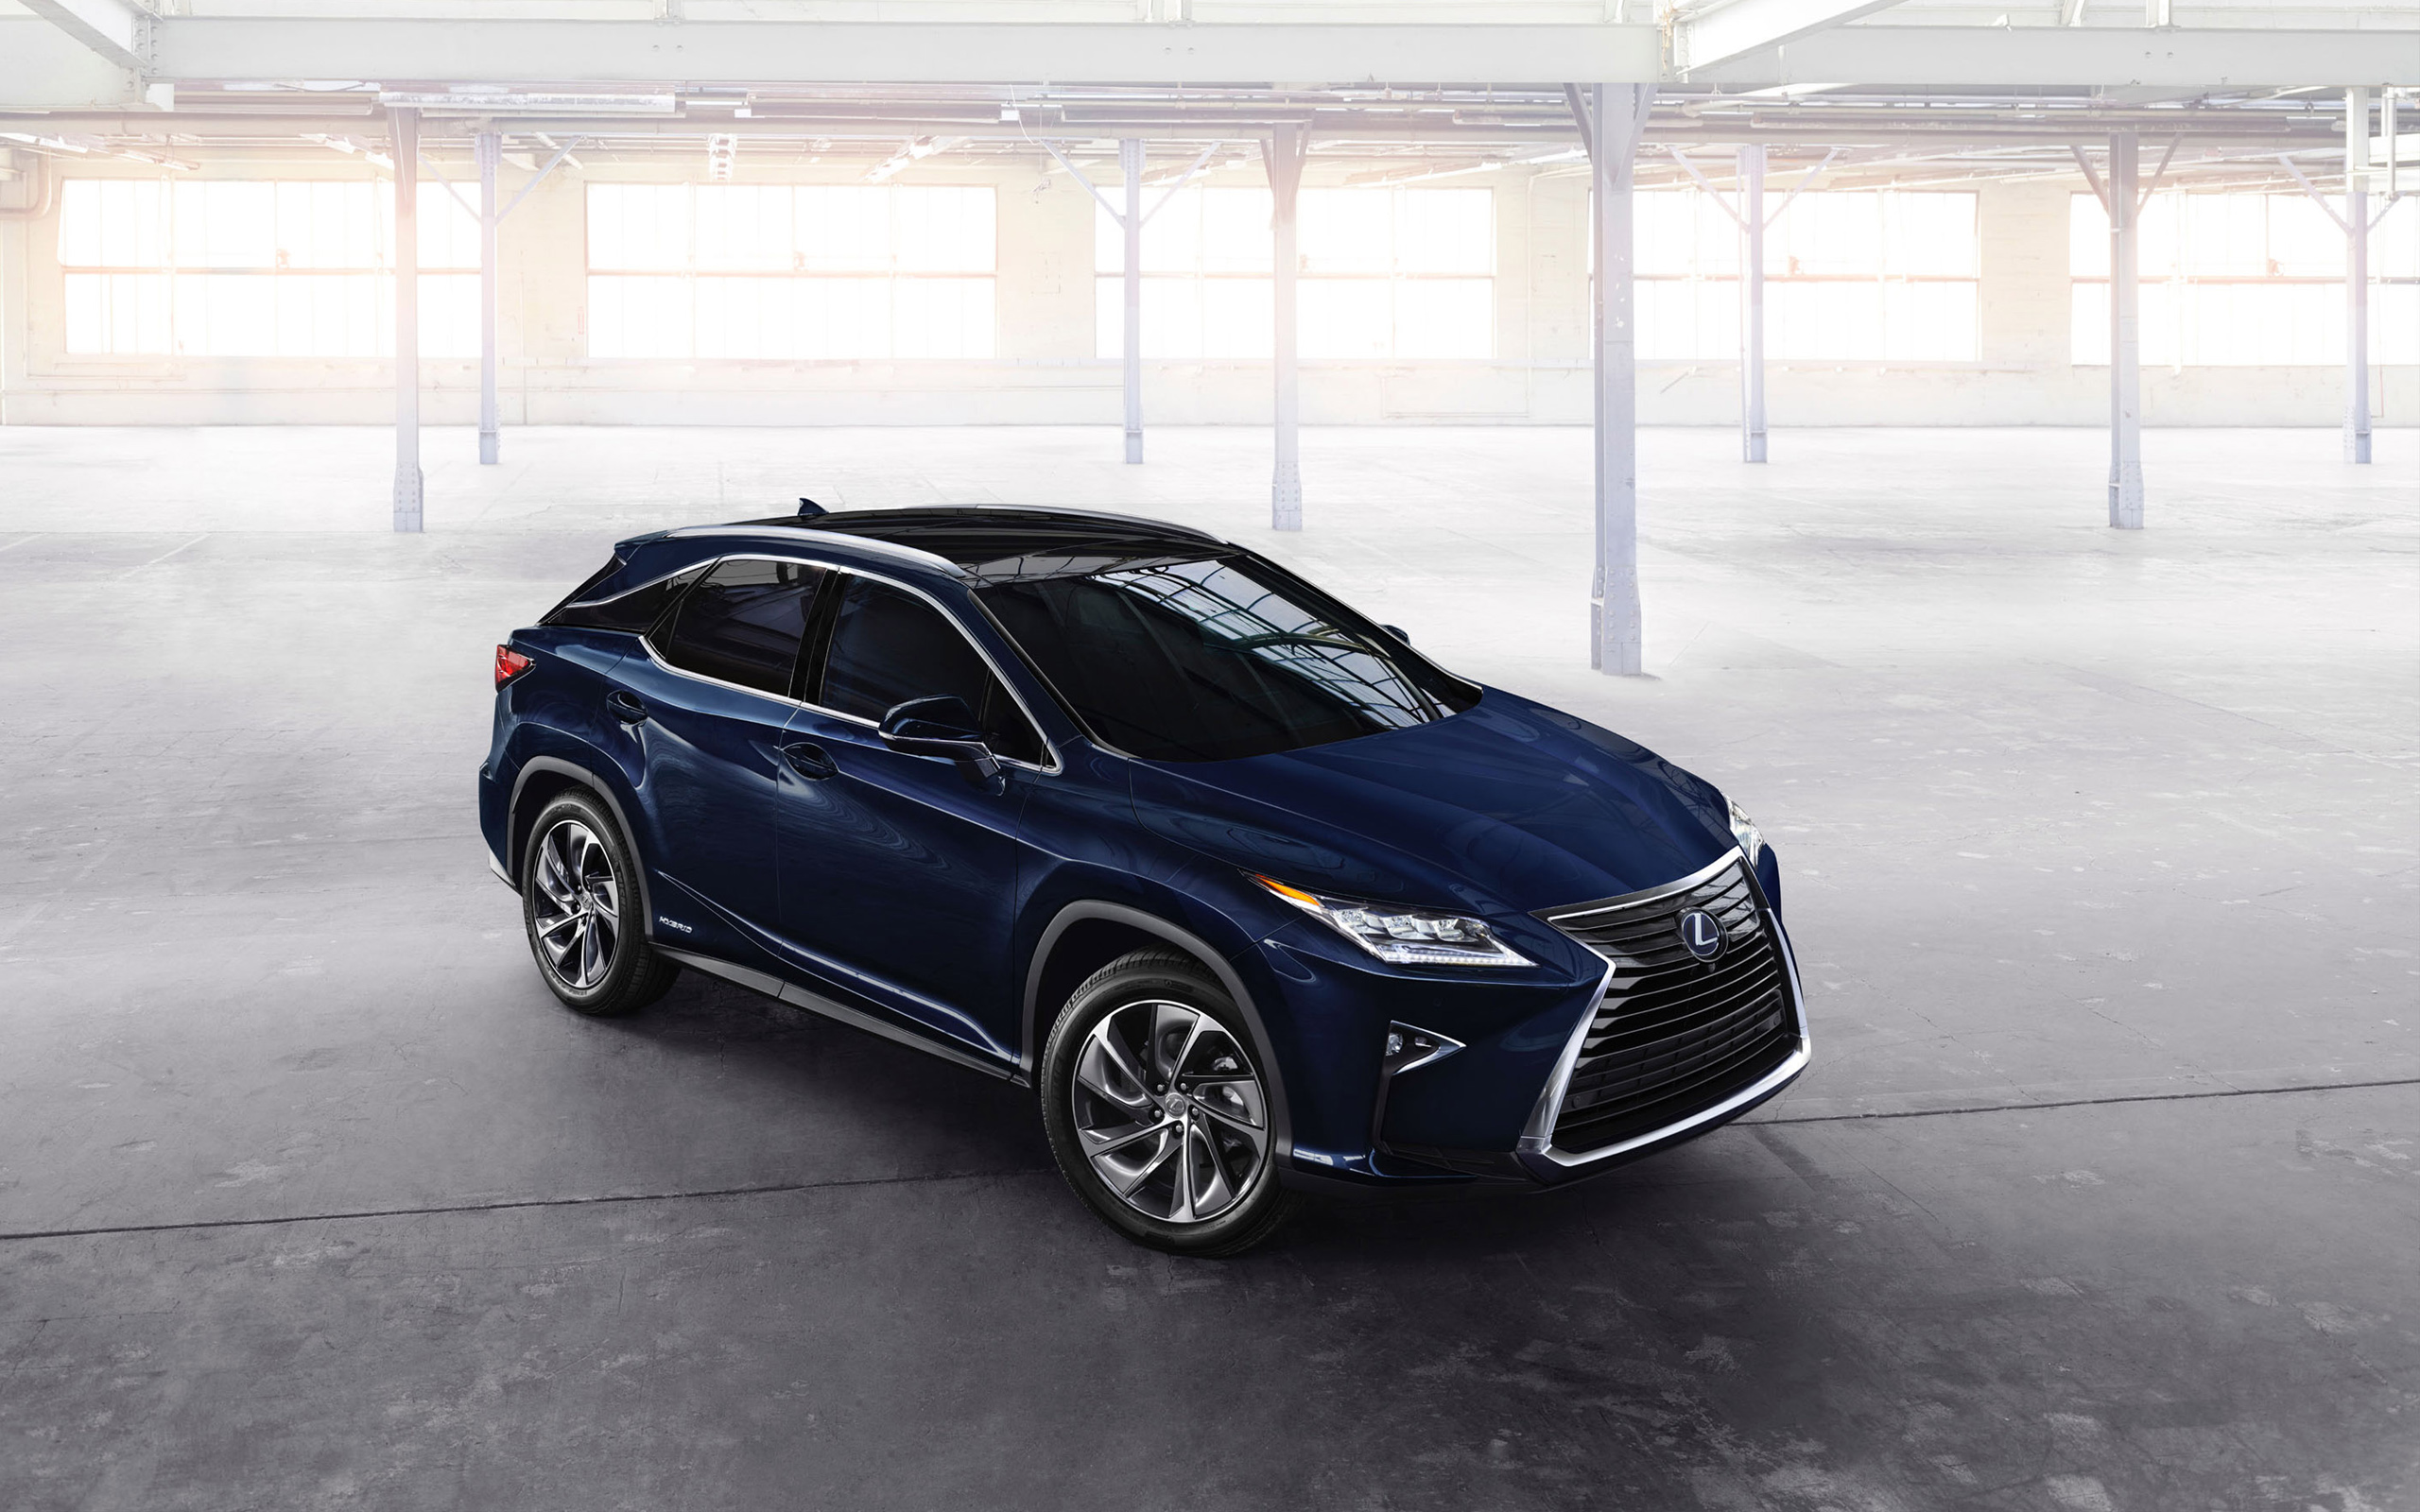 2016 lexus rx 450h wallpaper hd car wallpapers. Black Bedroom Furniture Sets. Home Design Ideas